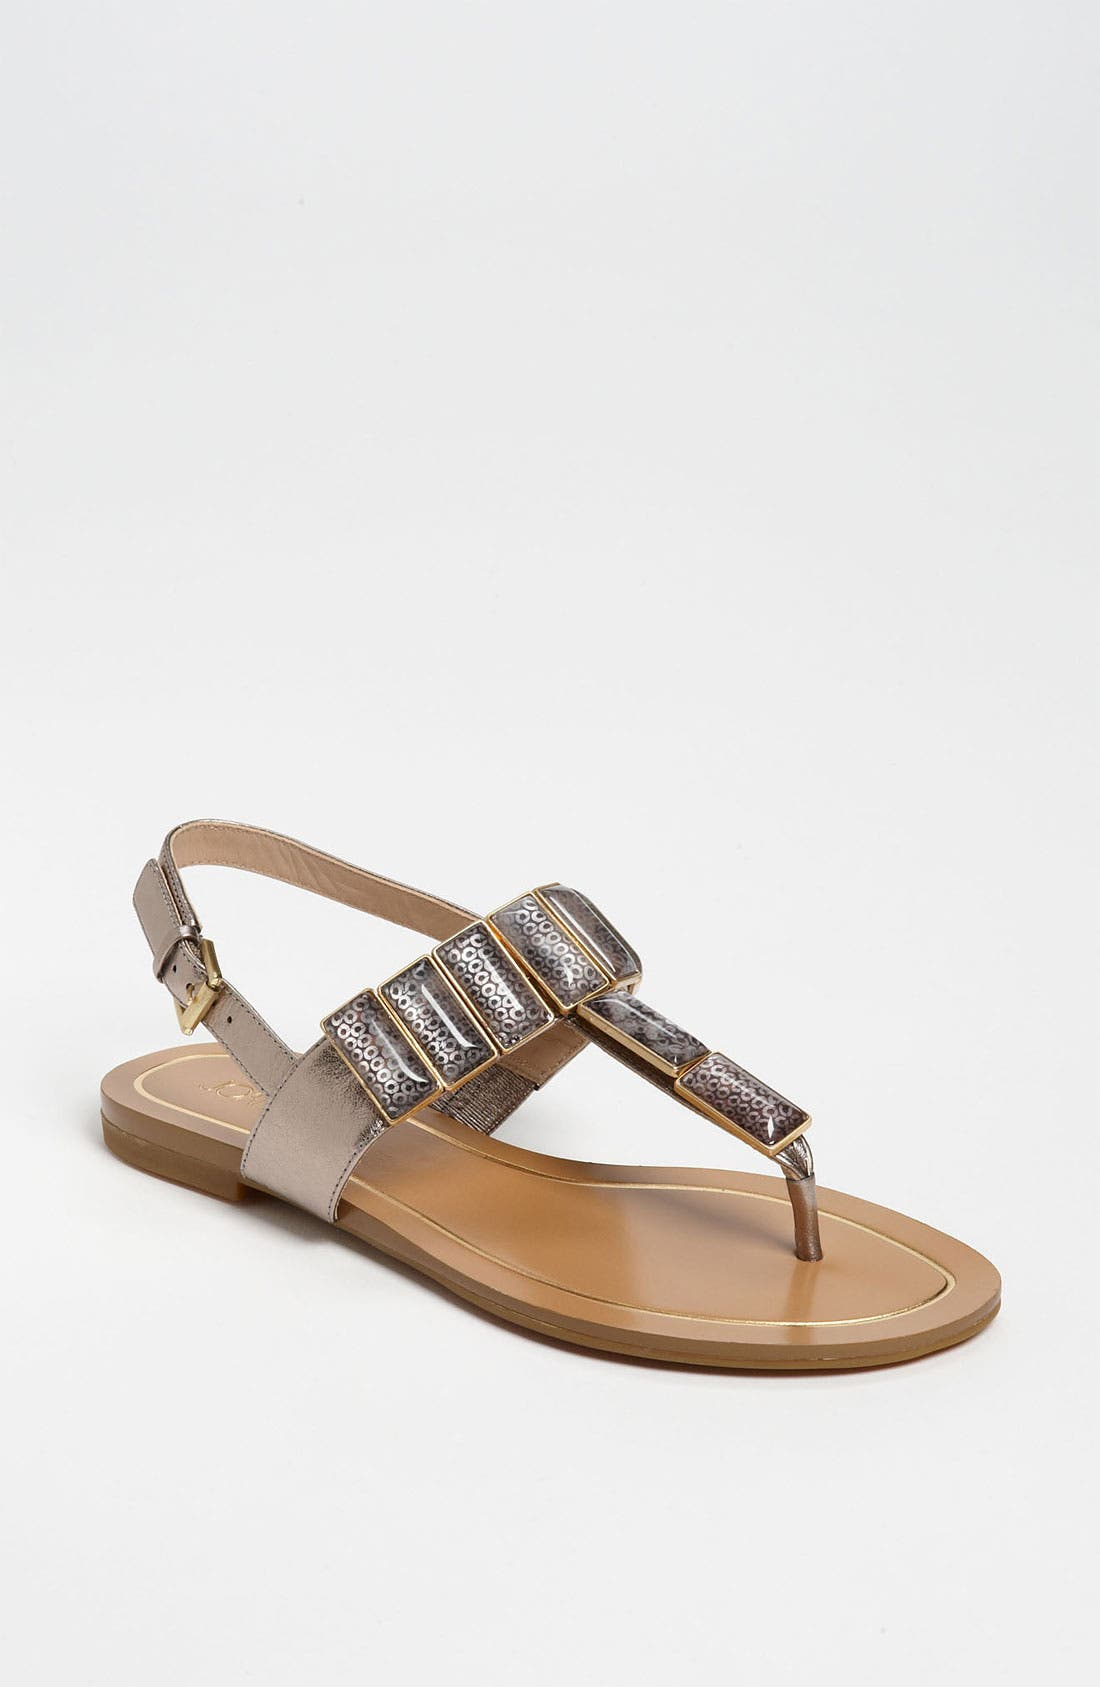 Alternate Image 1 Selected - Joan & David 'Kenlee' Sandal